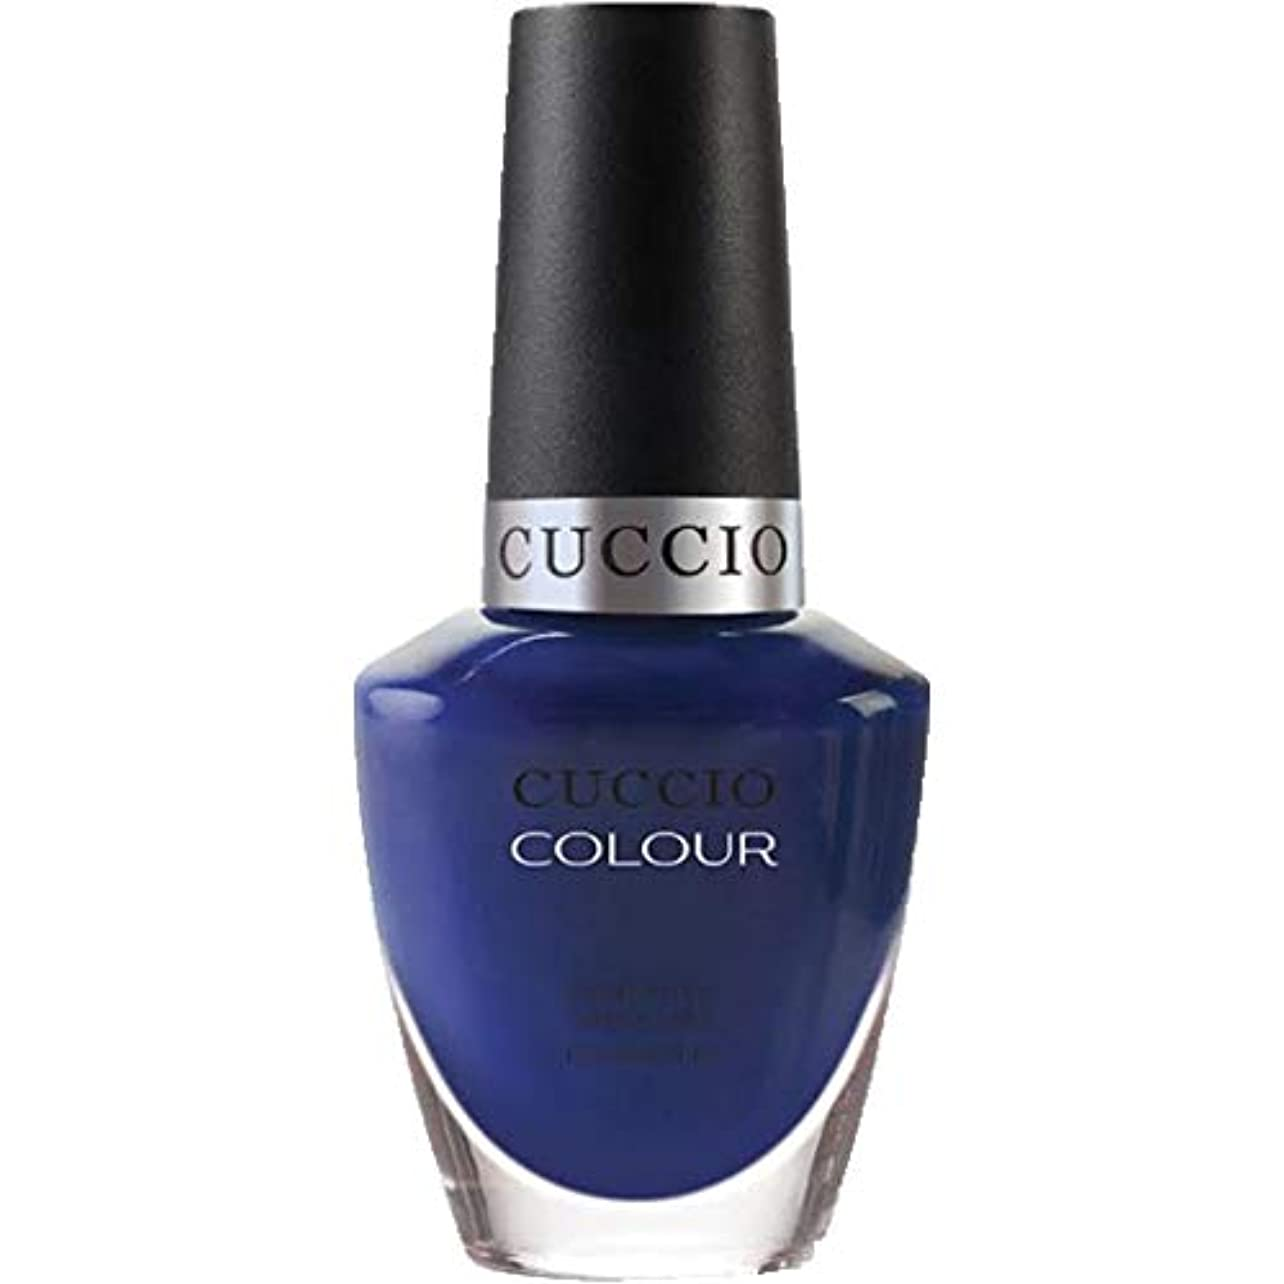 神経衰弱死傷者教義Cuccio Colour Gloss Lacquer - Lauren Blucall - 0.43oz / 13ml